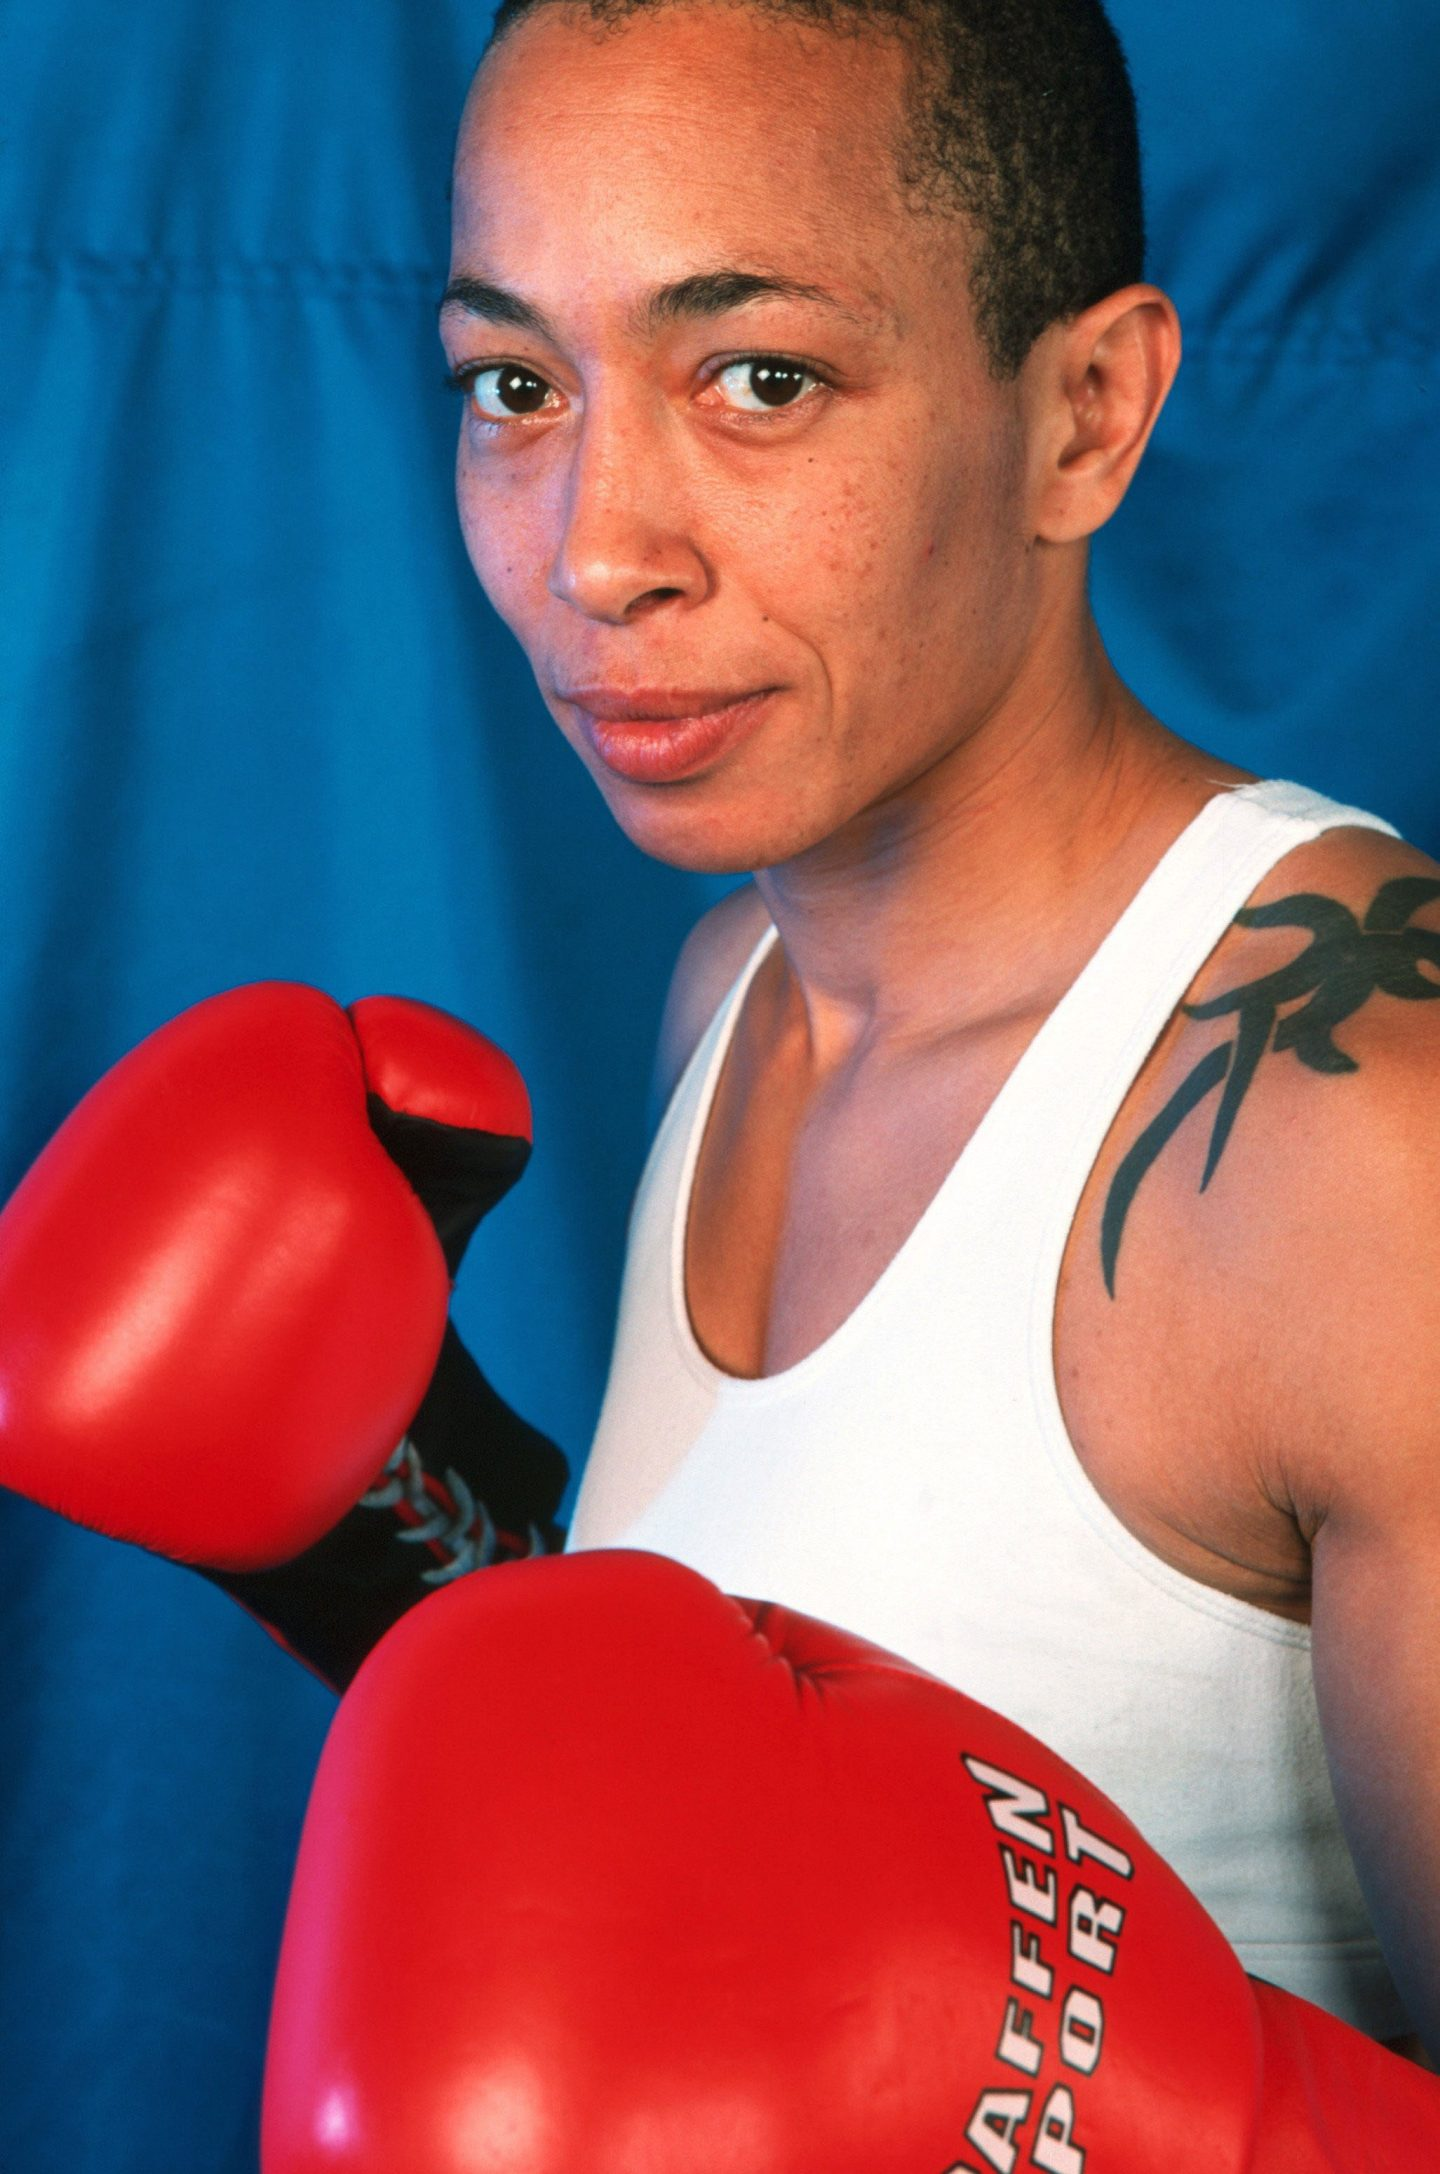 michele-aboro-boxing-portrait-colour-red-gloves